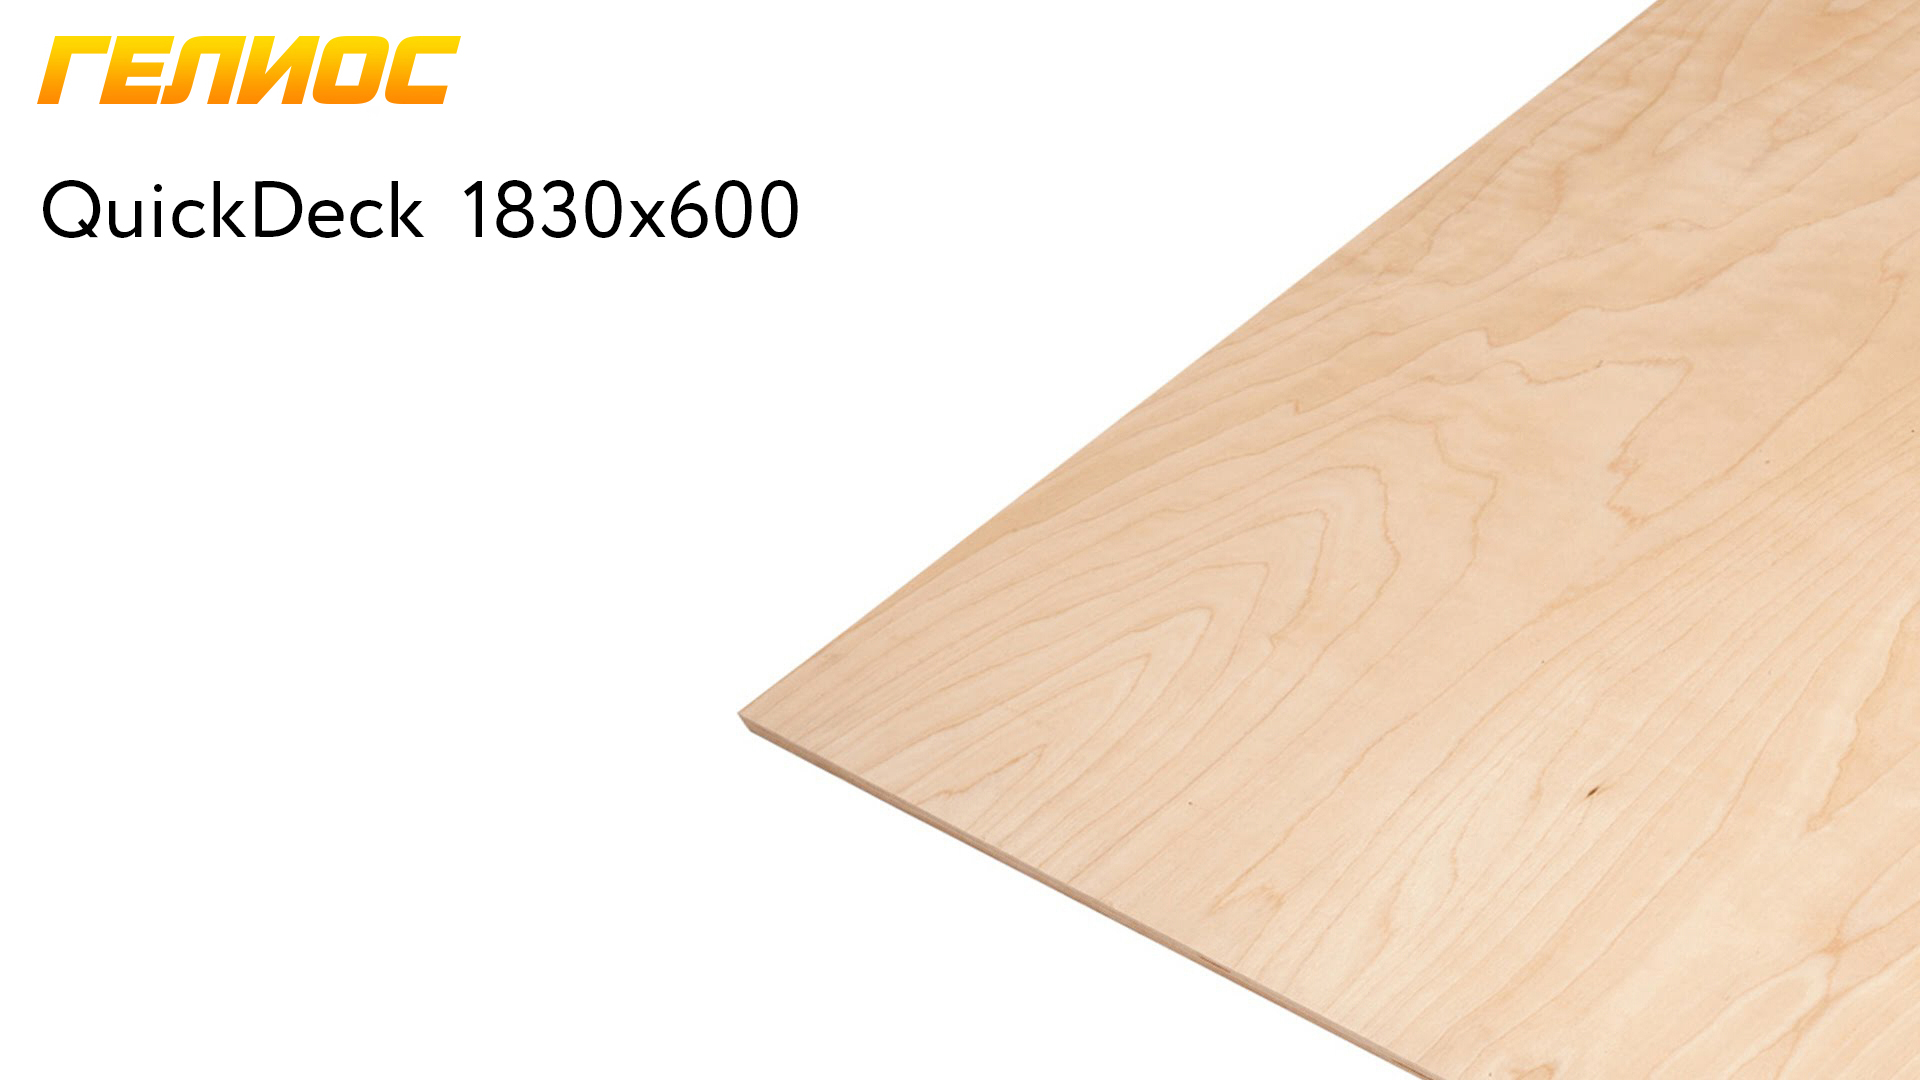 QuickDeck 1830x600